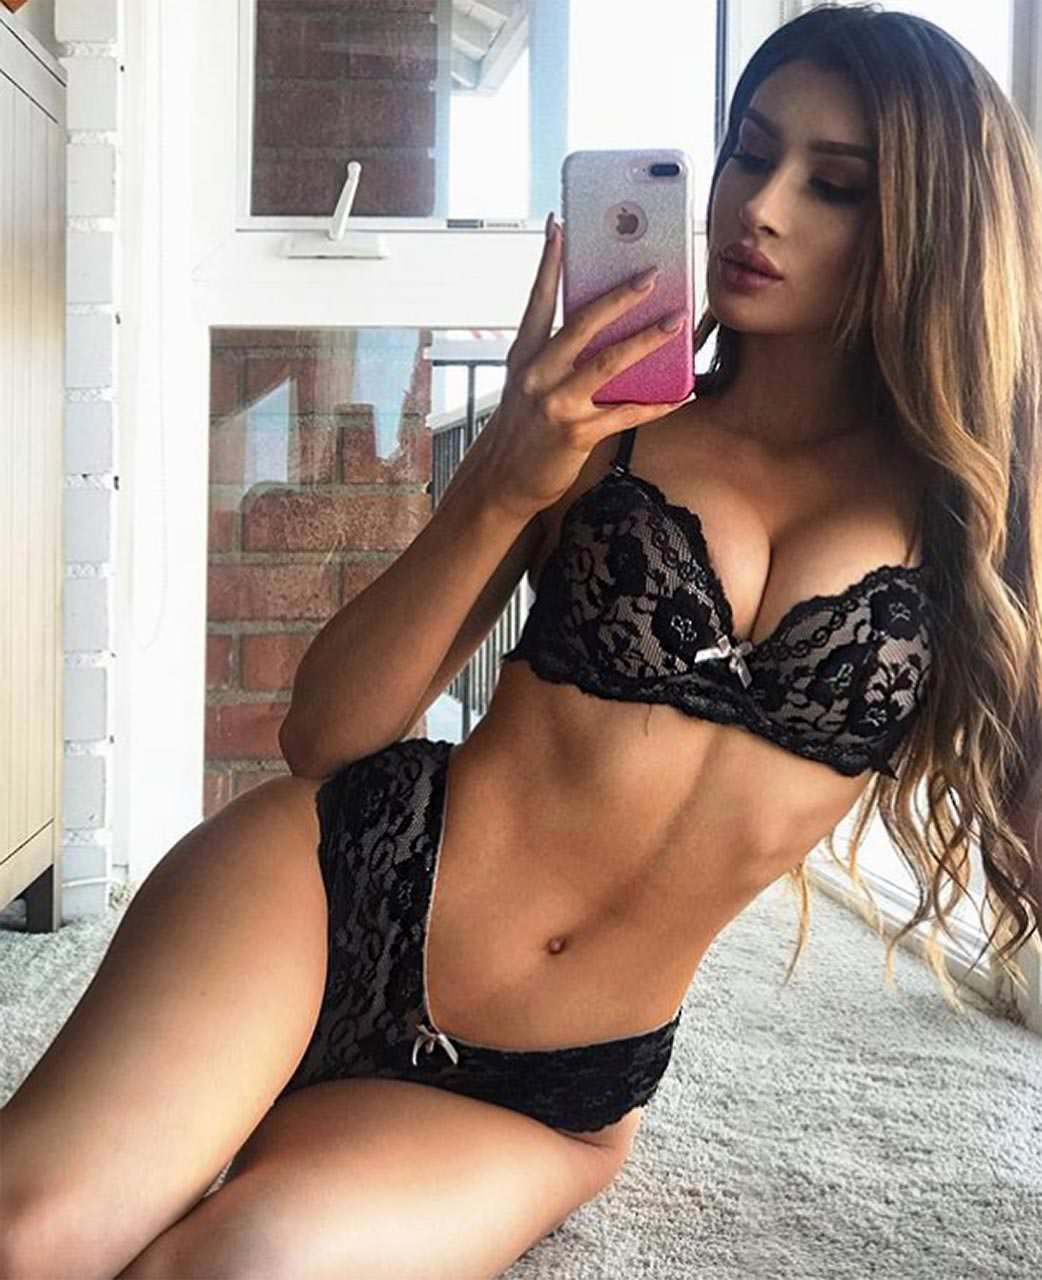 Molly Eskam Nude Leaked Videos and Naked Pics! 100